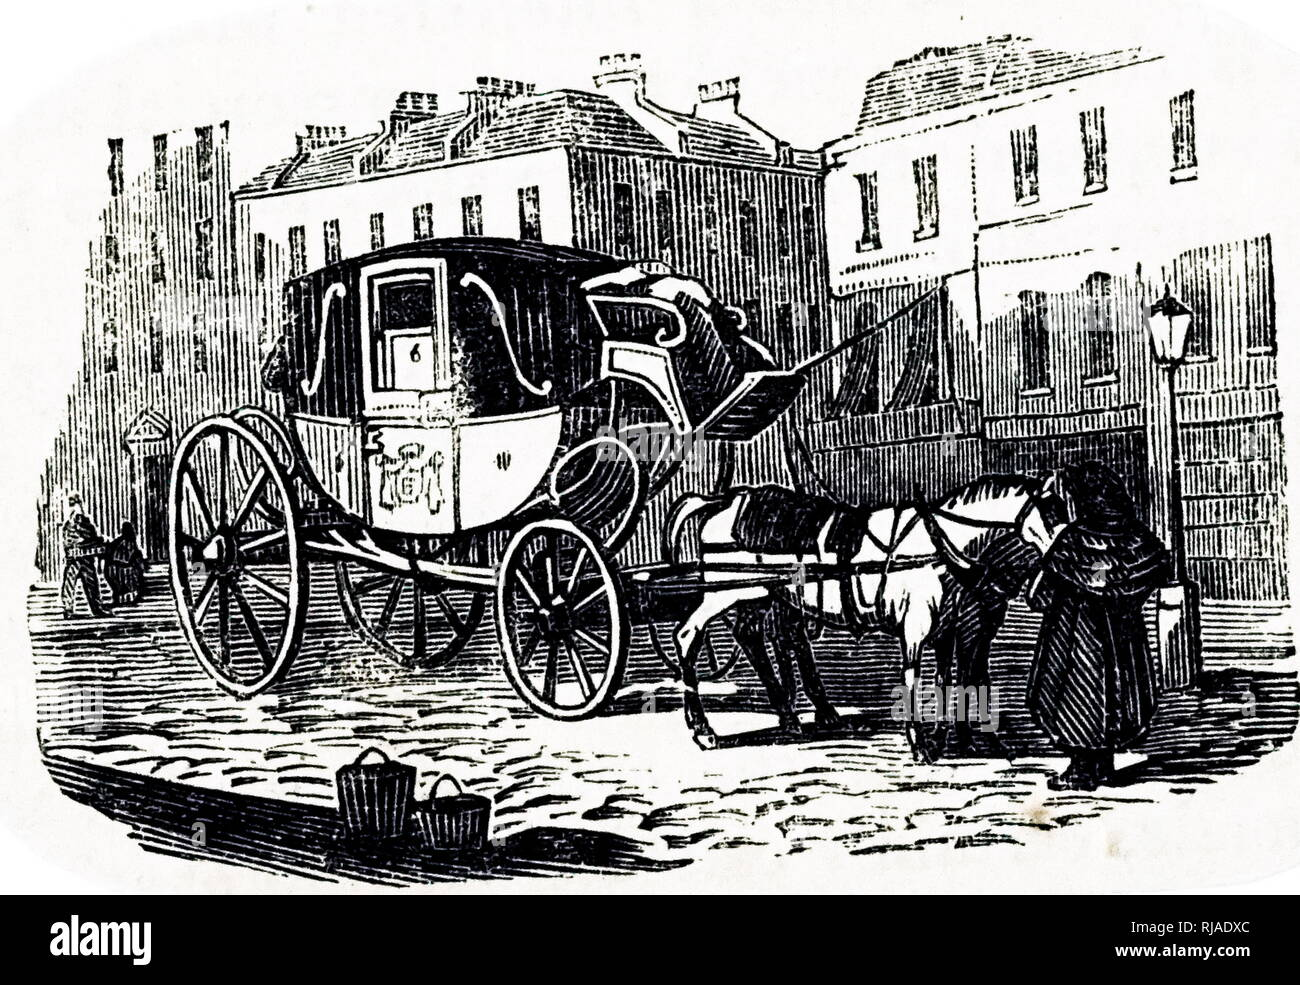 An engraving depicting a Hackney coach - a coach for hire. Dated 19th century - Stock Image